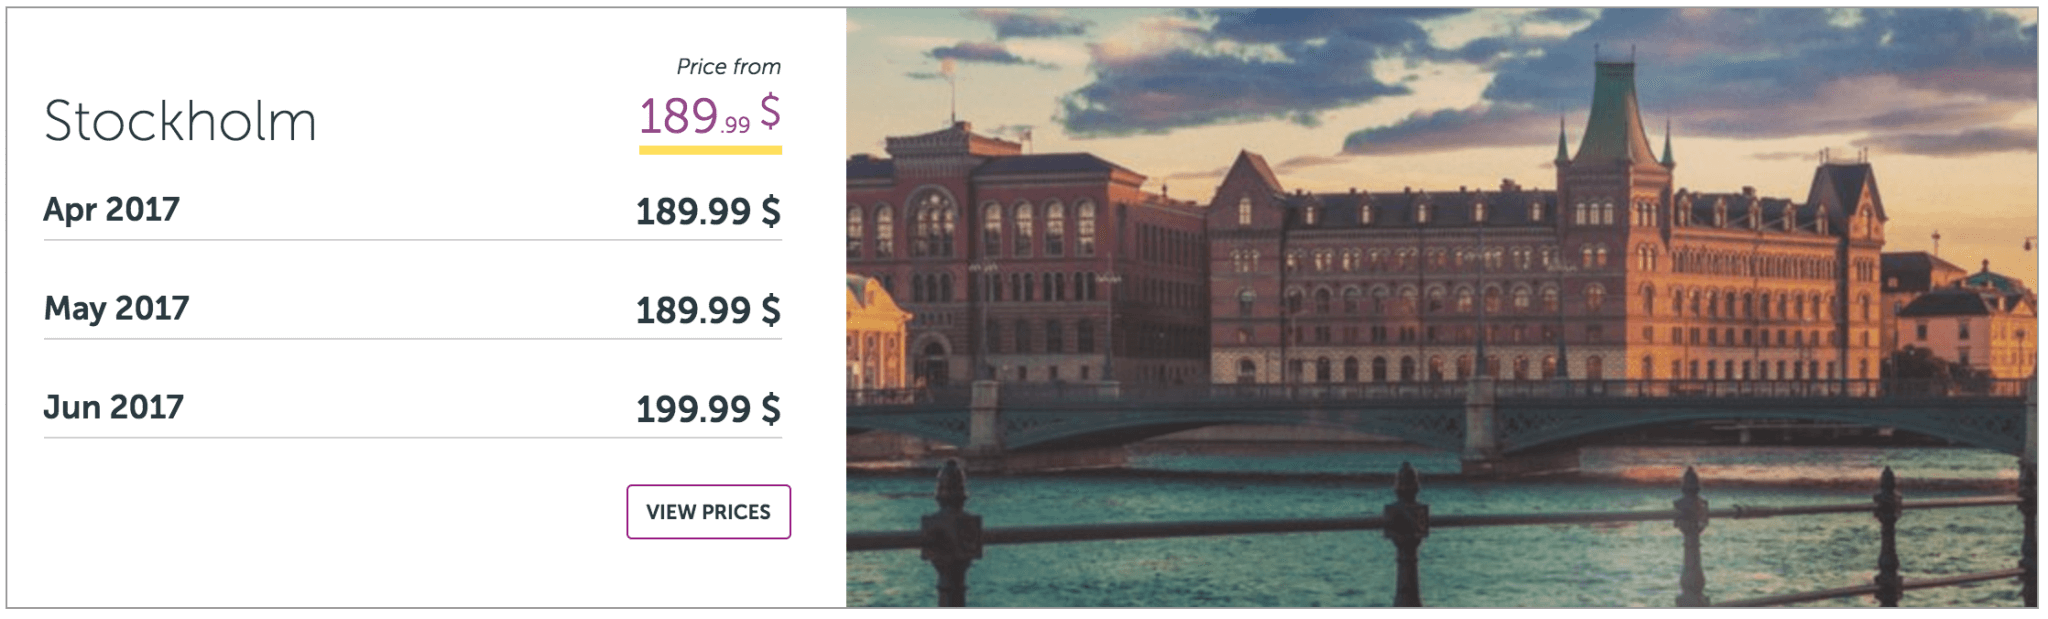 LA to Stockholm $500 or less?